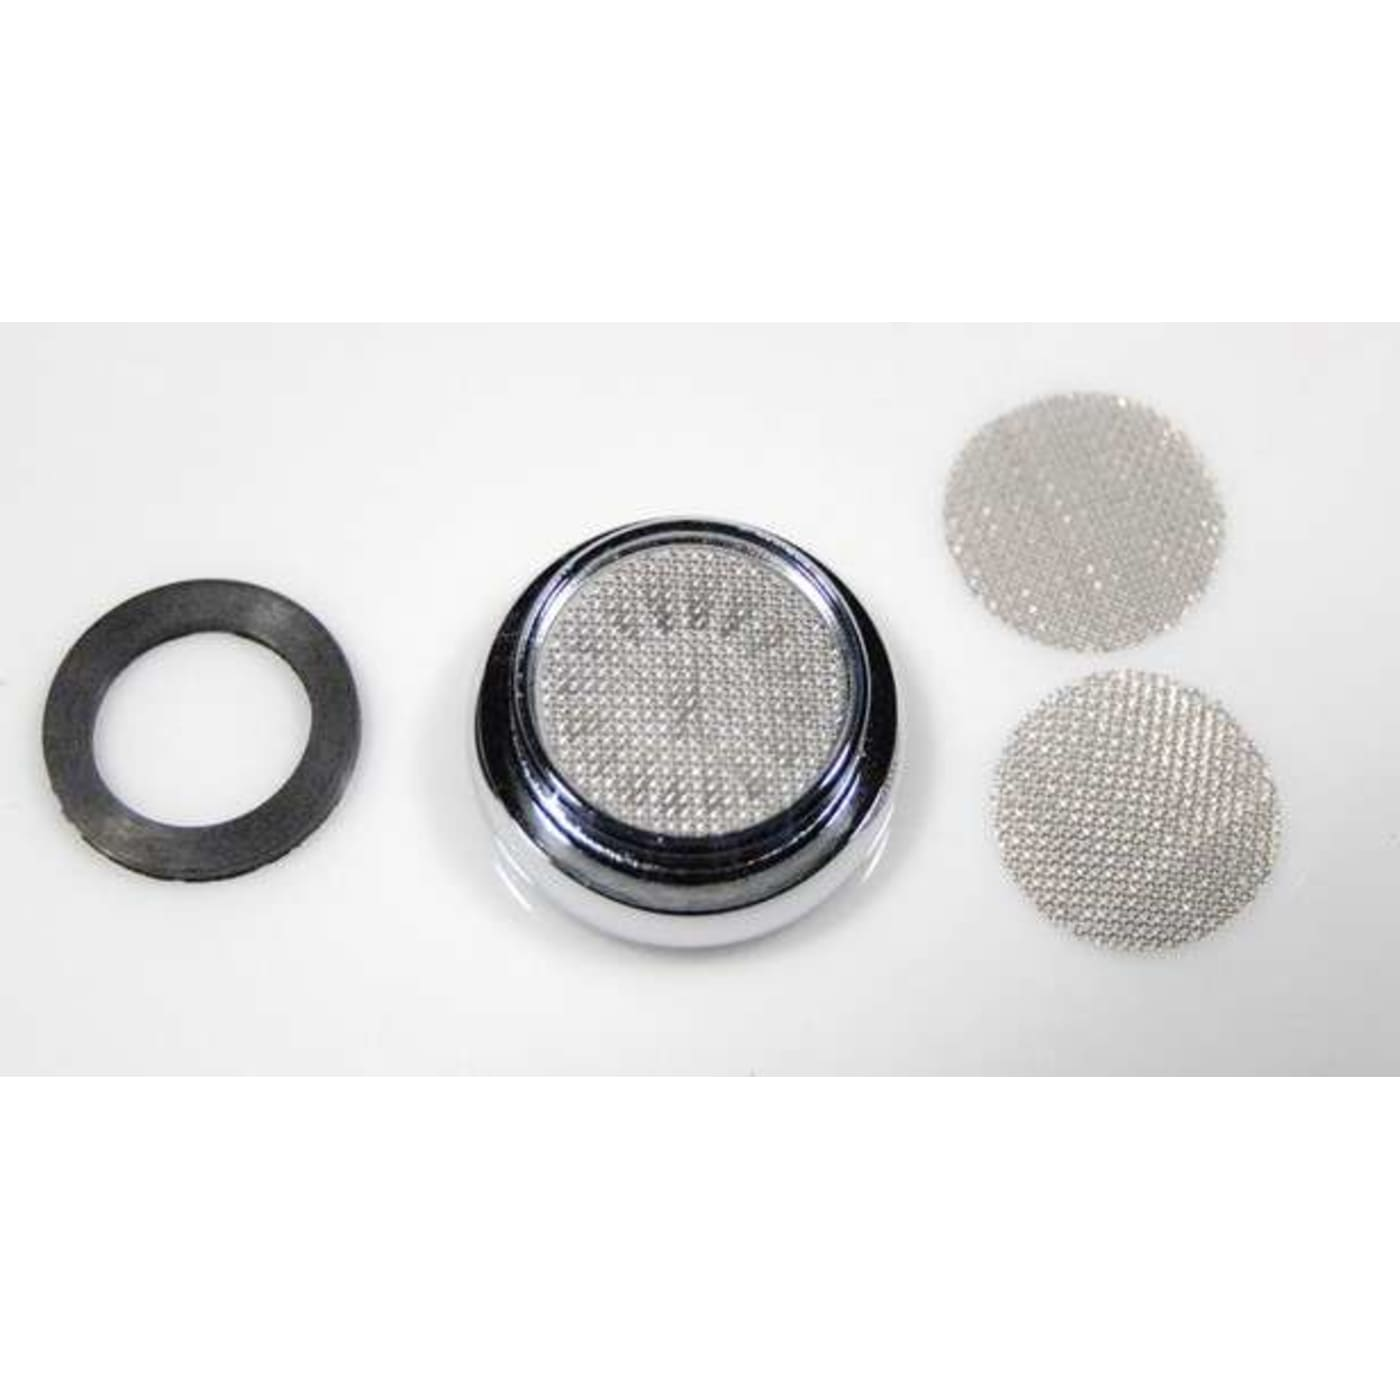 Toto Mercer Kitchen Faucet Aerator THU4012 Polished Chrome ...